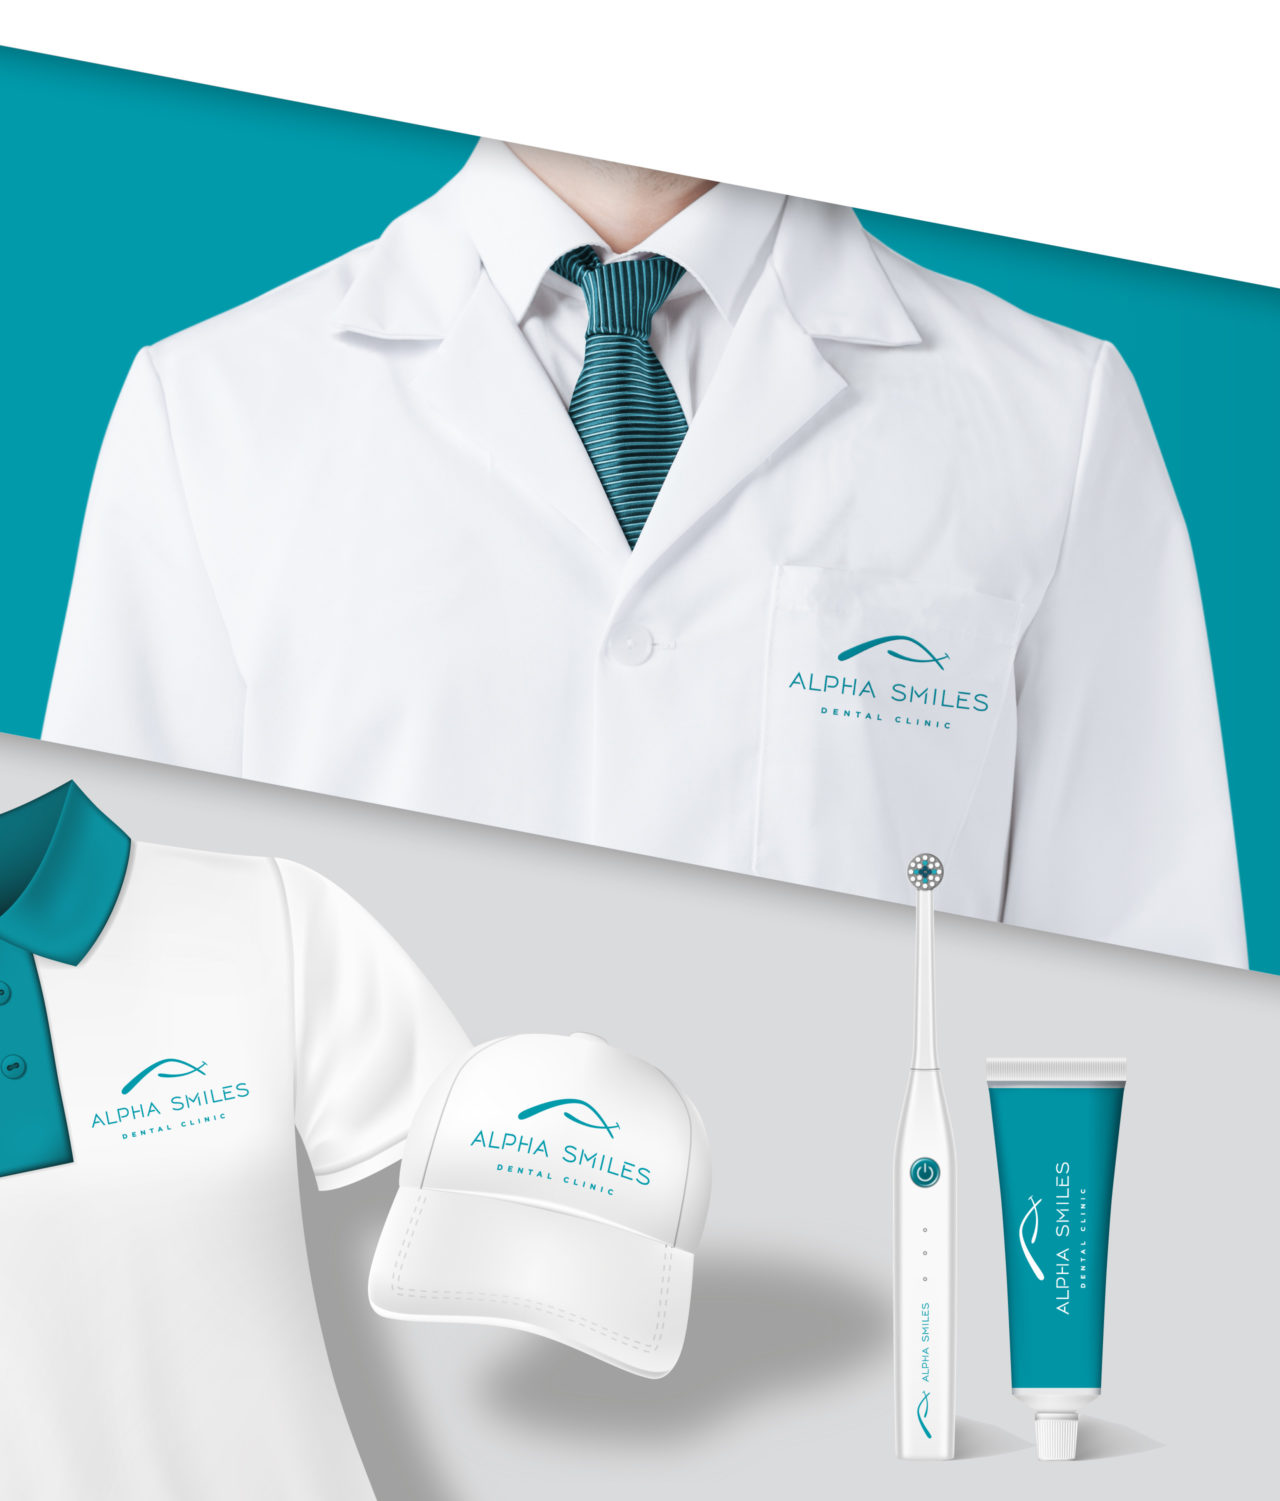 Pesentation of hat, tshirt and other dental related branded materials for Alpha Smiles dental clinic